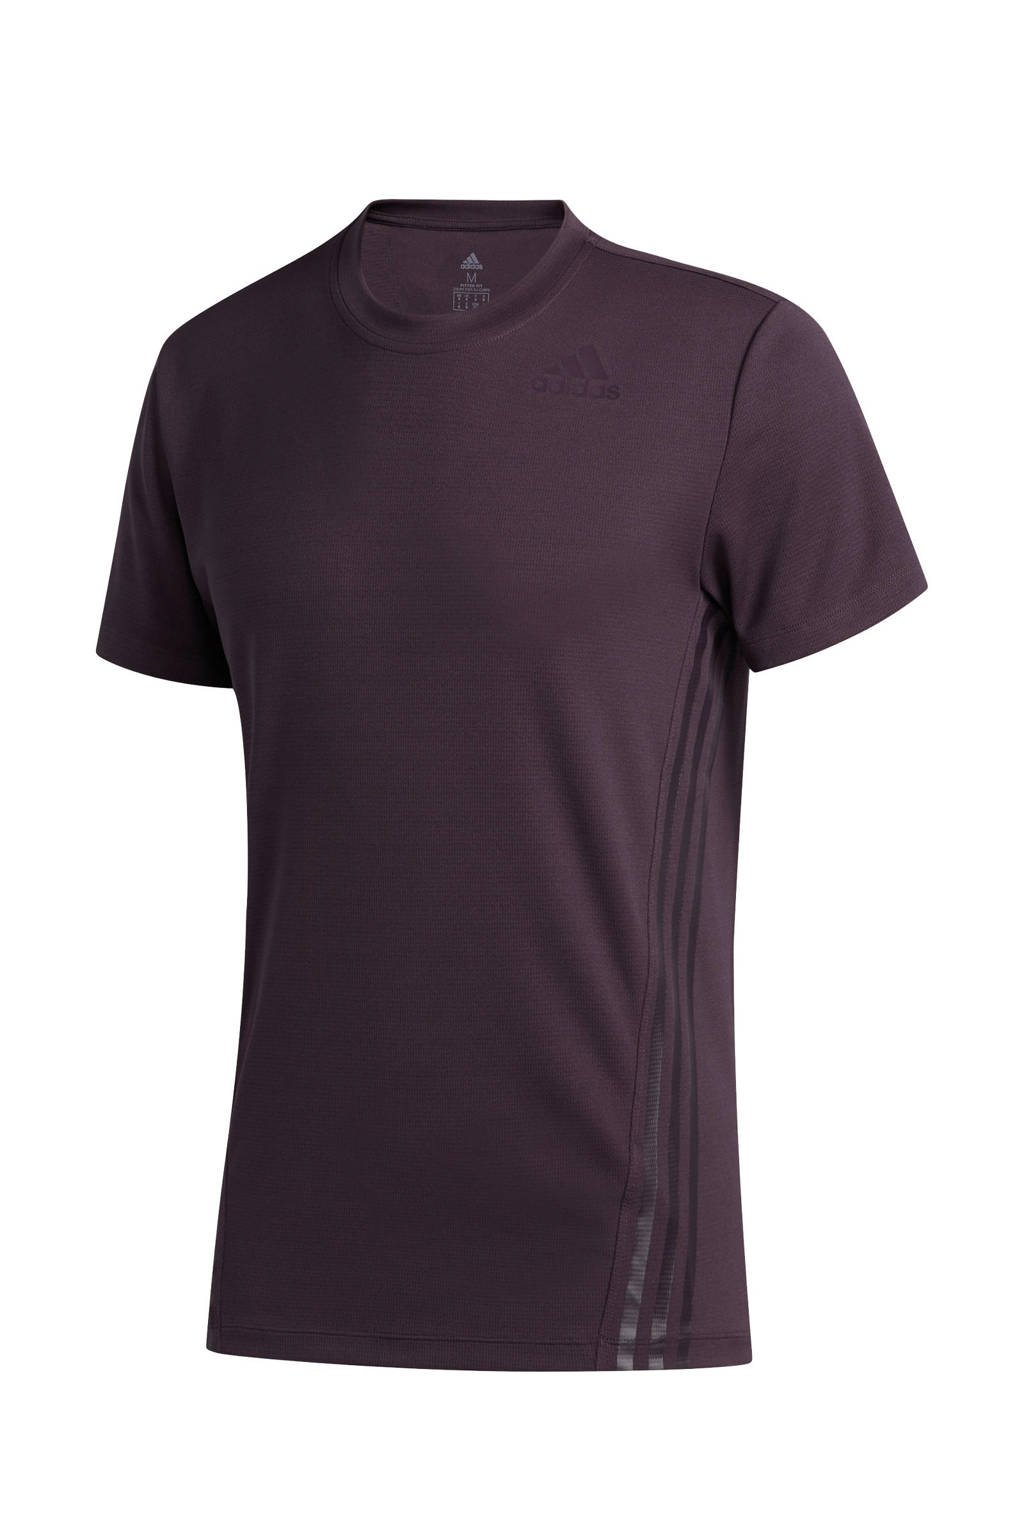 adidas Performance   sport T-shirt donkerpaars, Donkerpaars